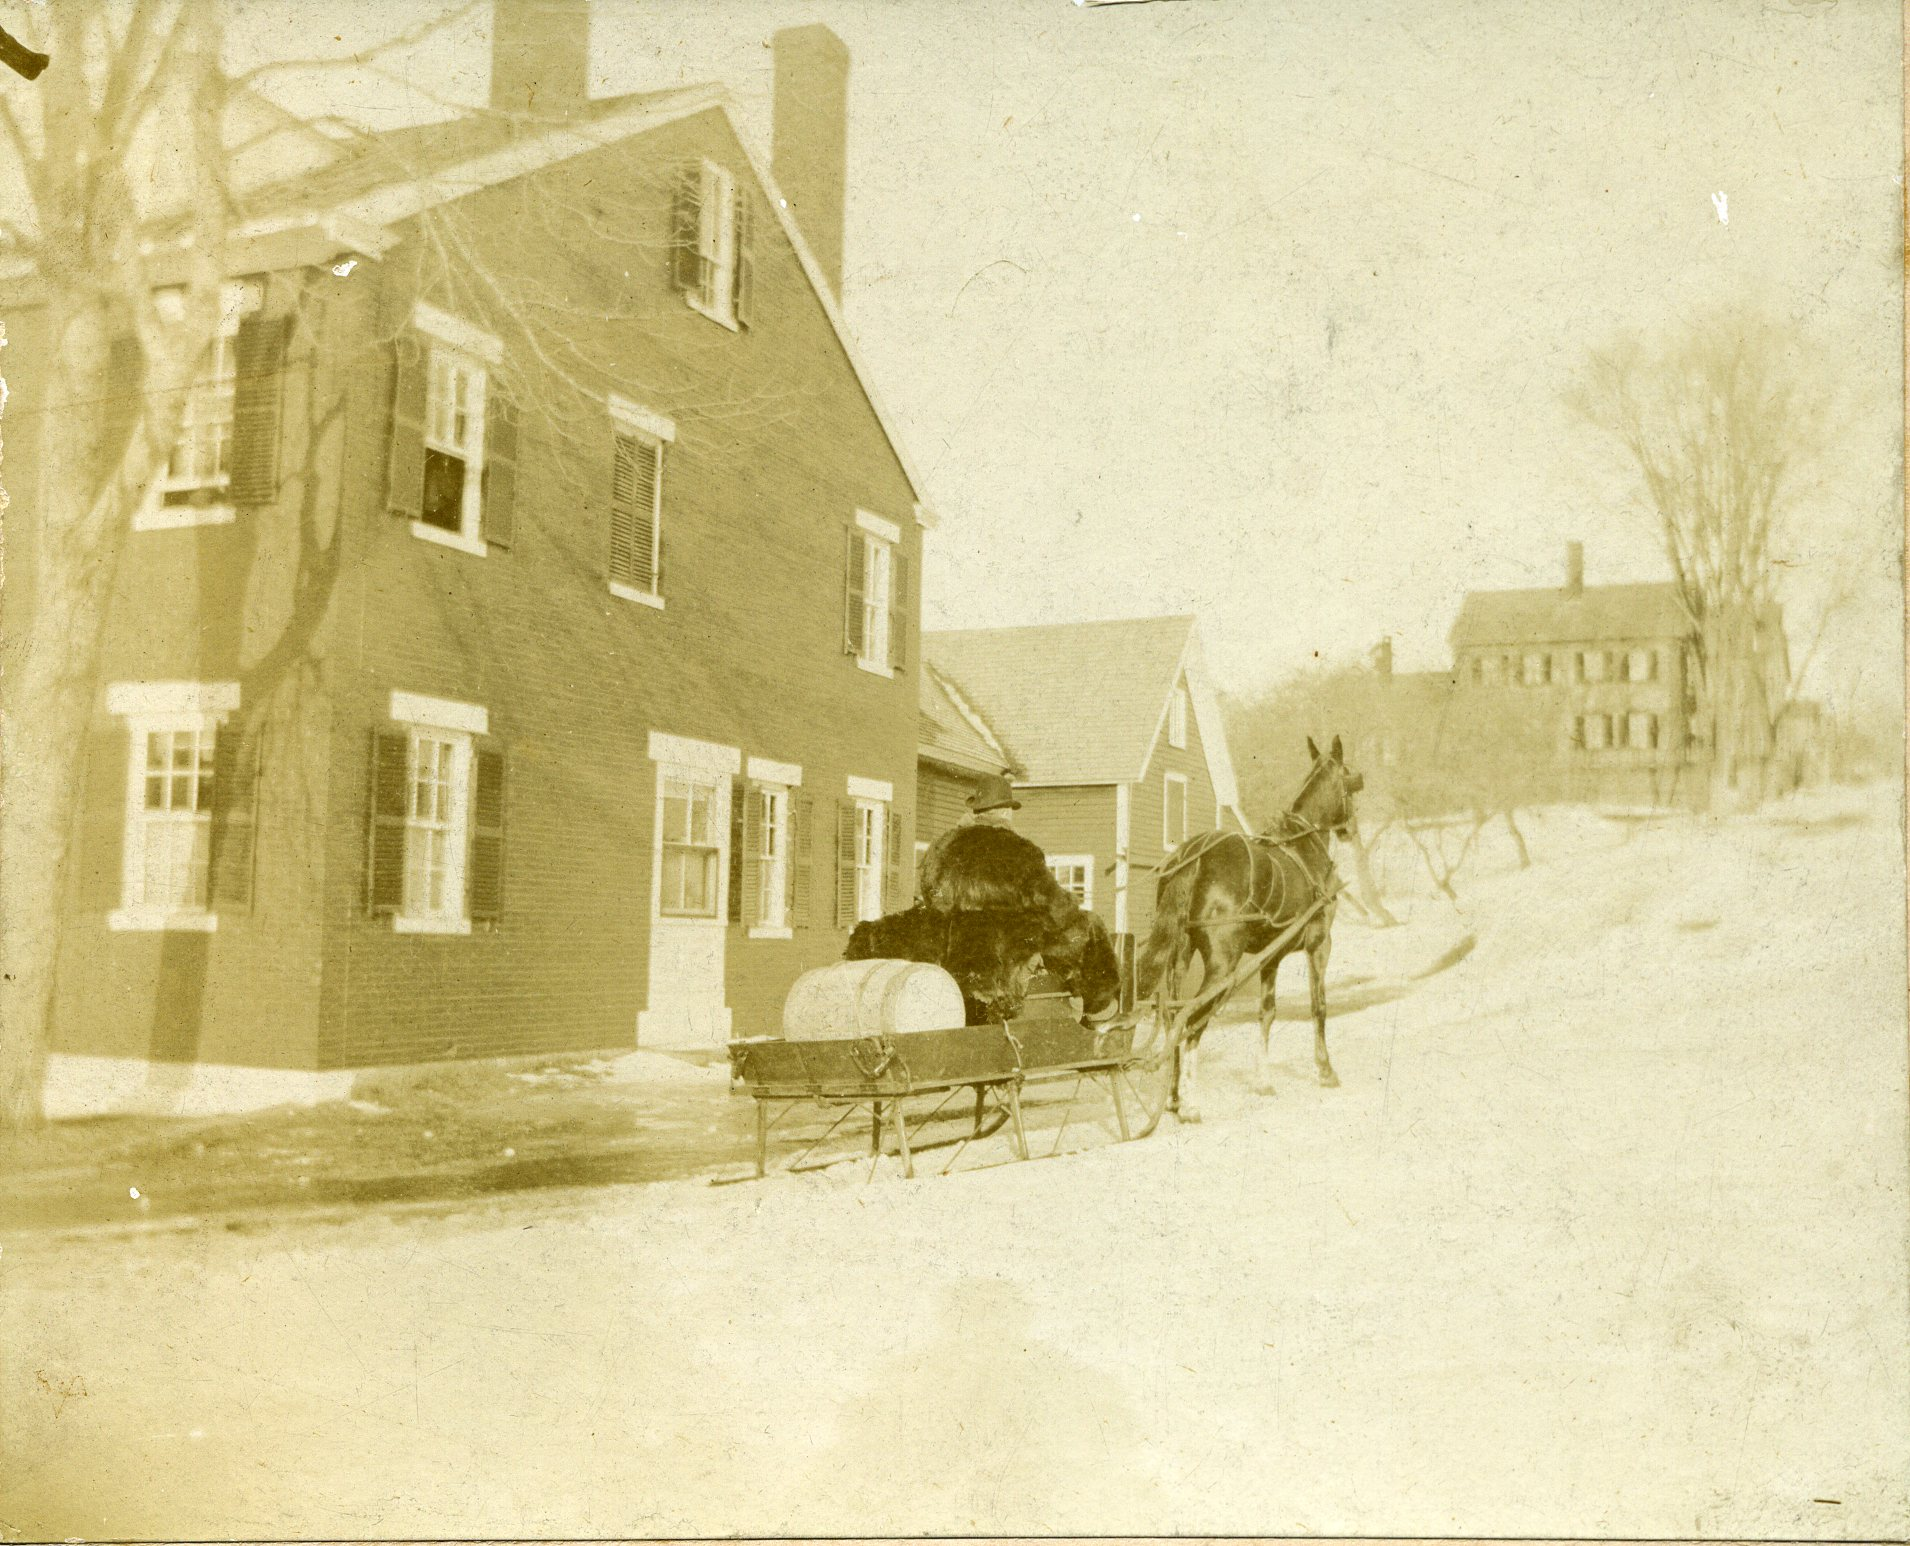 Town of Blue Hill: winter sleigh with horse